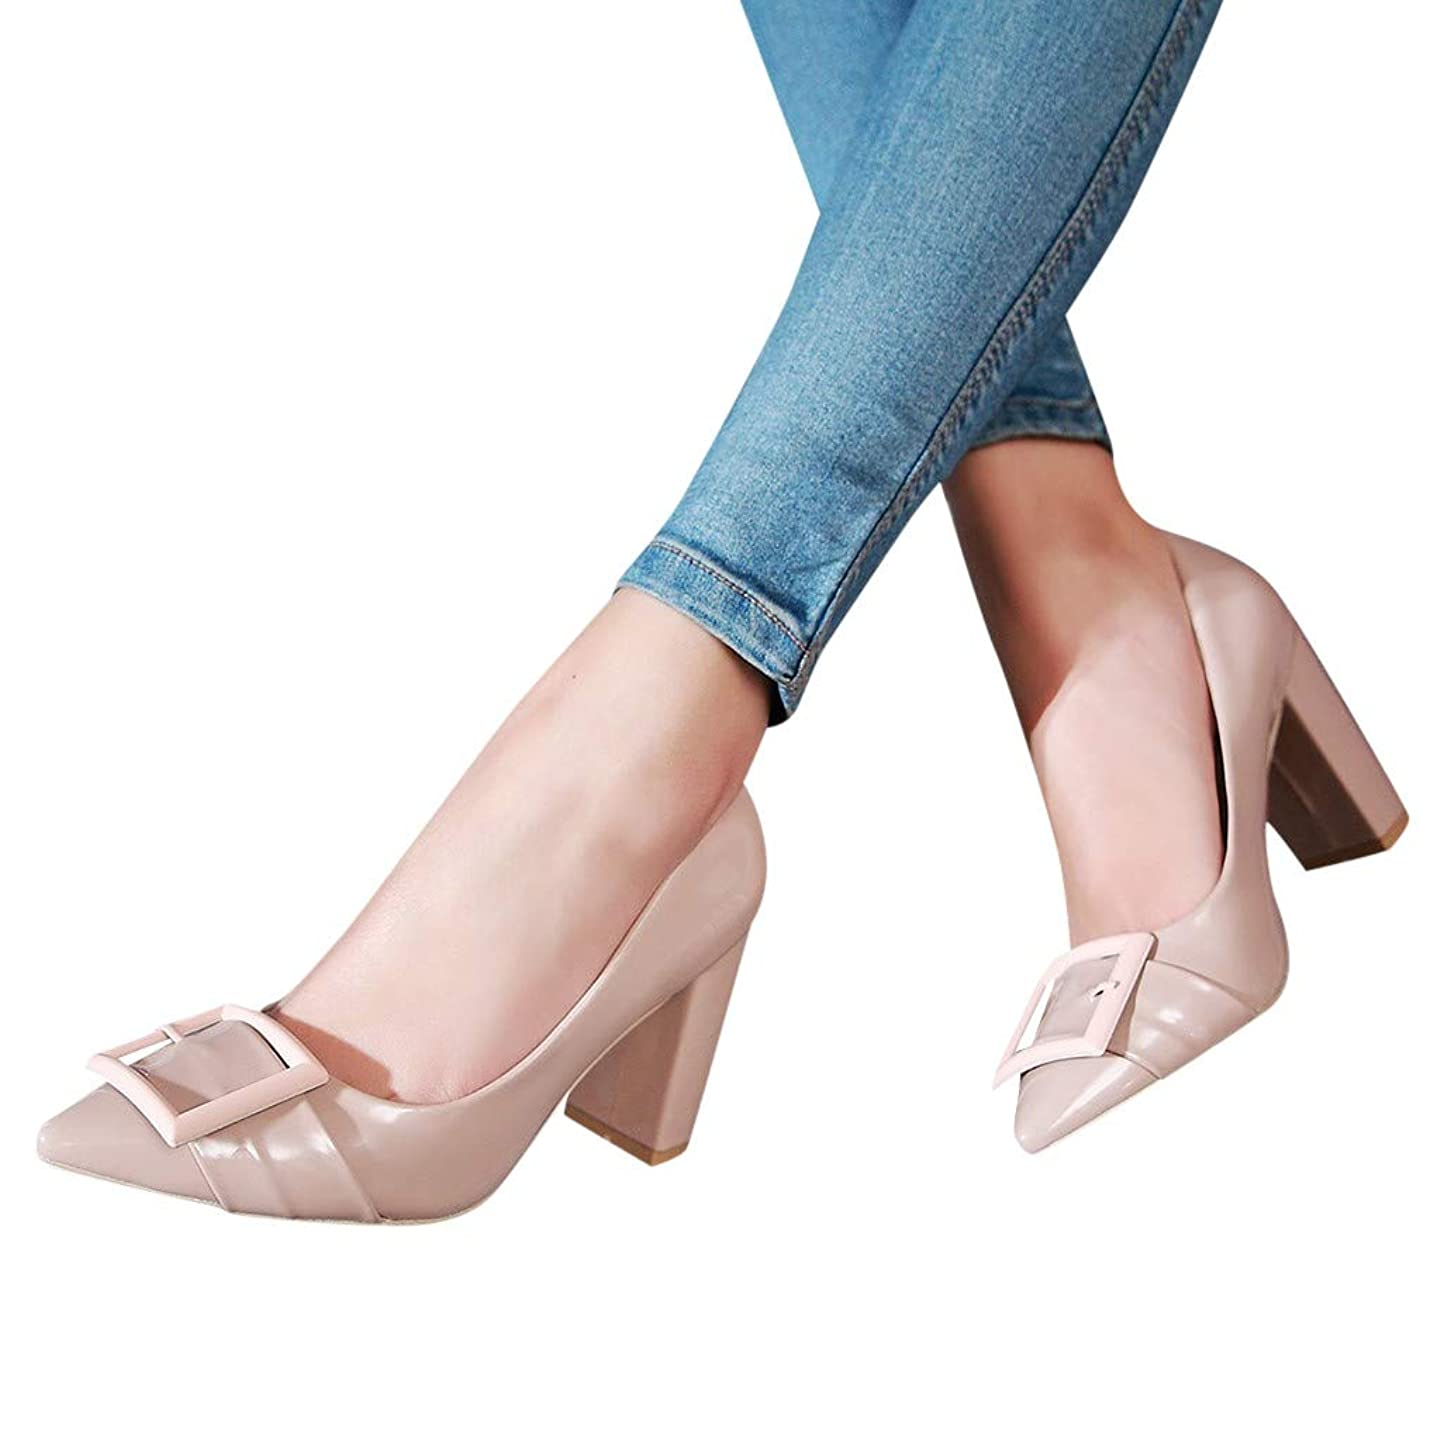 GHrcvdhw Ladies Single Elegant Confident Square High Heel Pointed Solid Thick Leisure Work Shoes Simple Style Sandals